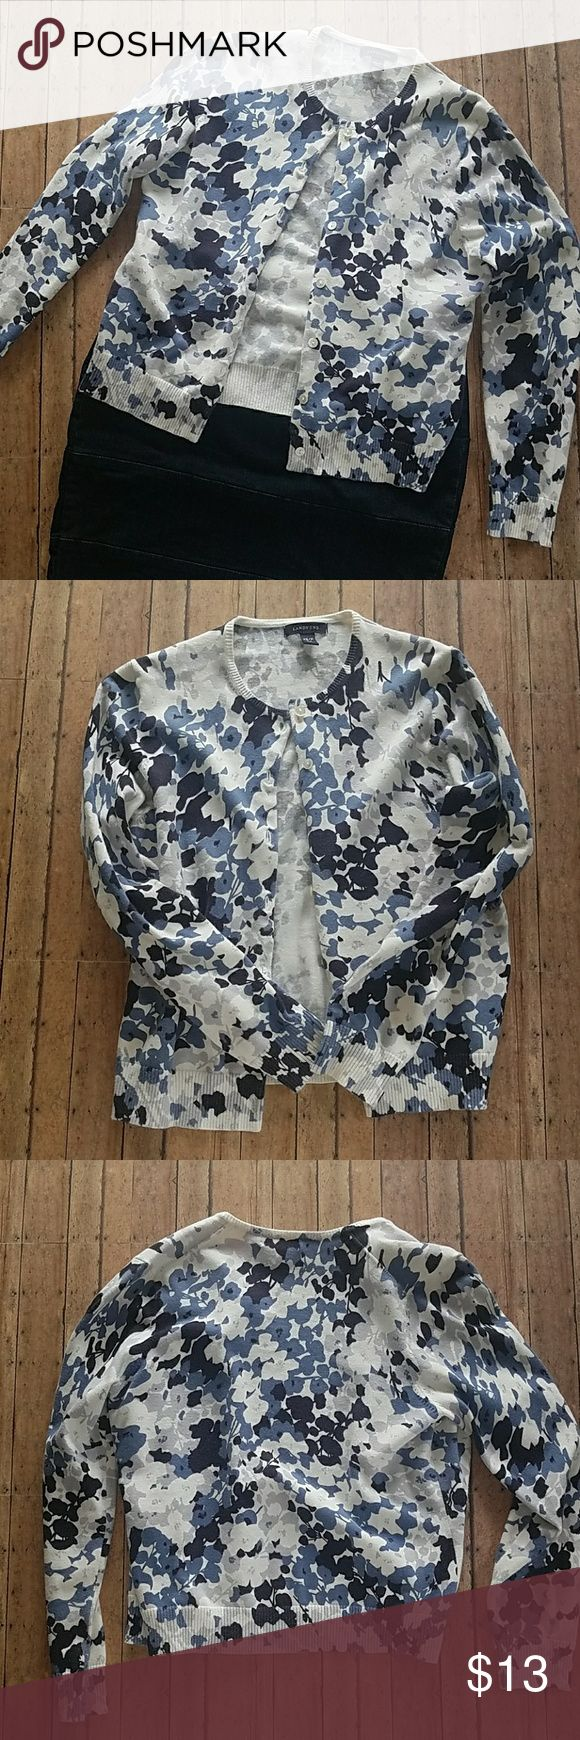 Lands End Floral Cardigan Beautiful blue, white, black & gray floral cardigan by Lands End. Long sleeve with a crew neck. I have paired it with a cute denim skirt that is also for sale in my closet. SMOKE FREE, PET FREE HOME NO TRADES, NO PAYPAL Lands' End Sweaters Cardigans